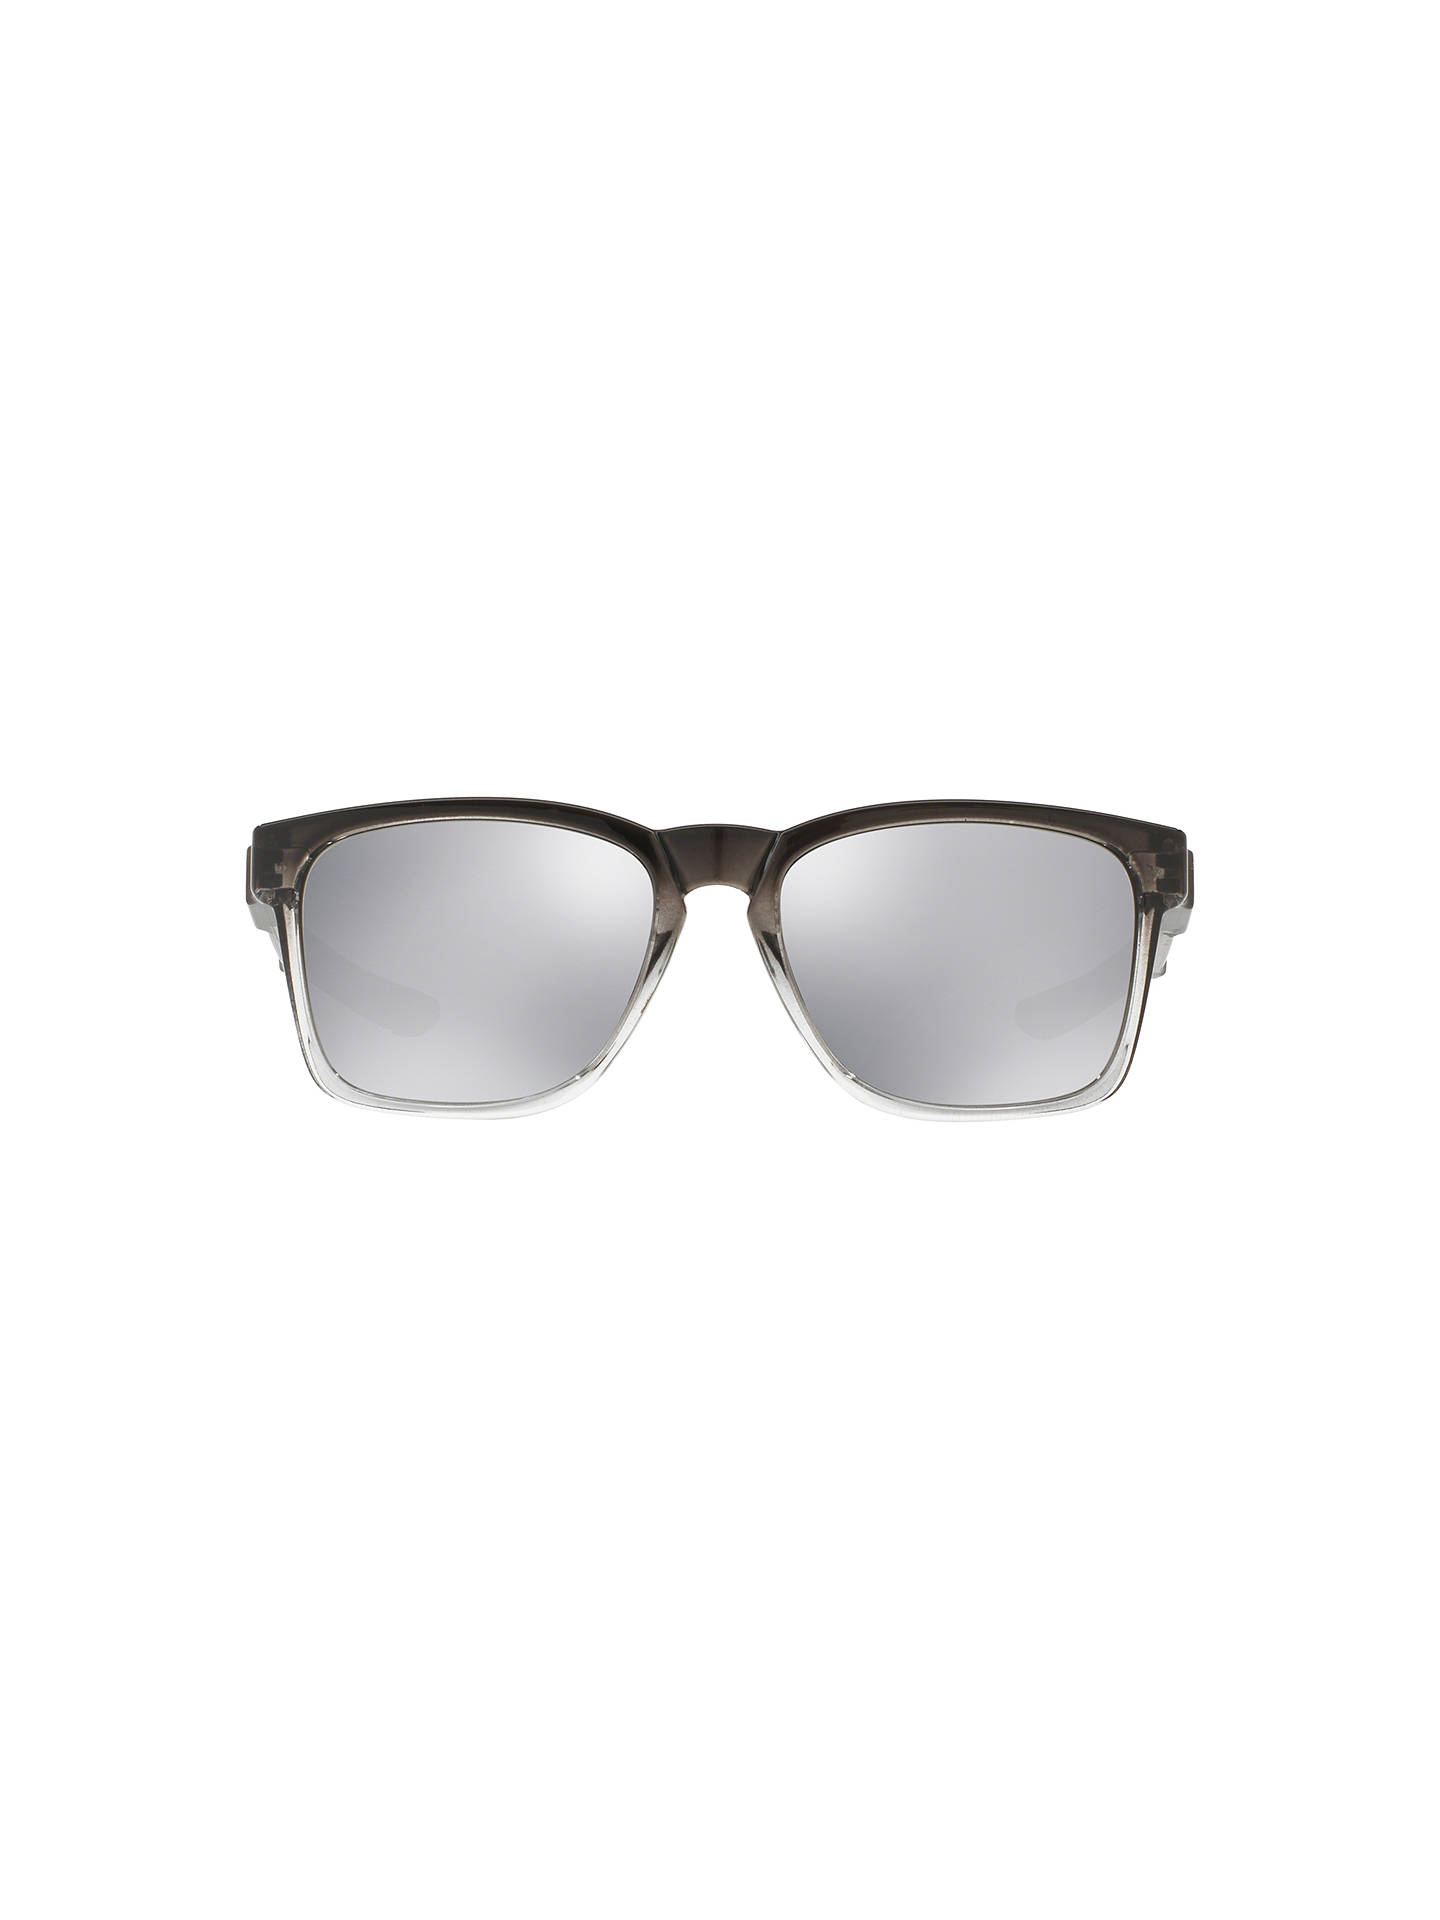 BuyOakley OO9272 Catalyst Rectangular Sunglasses, Silver Online at johnlewis.com